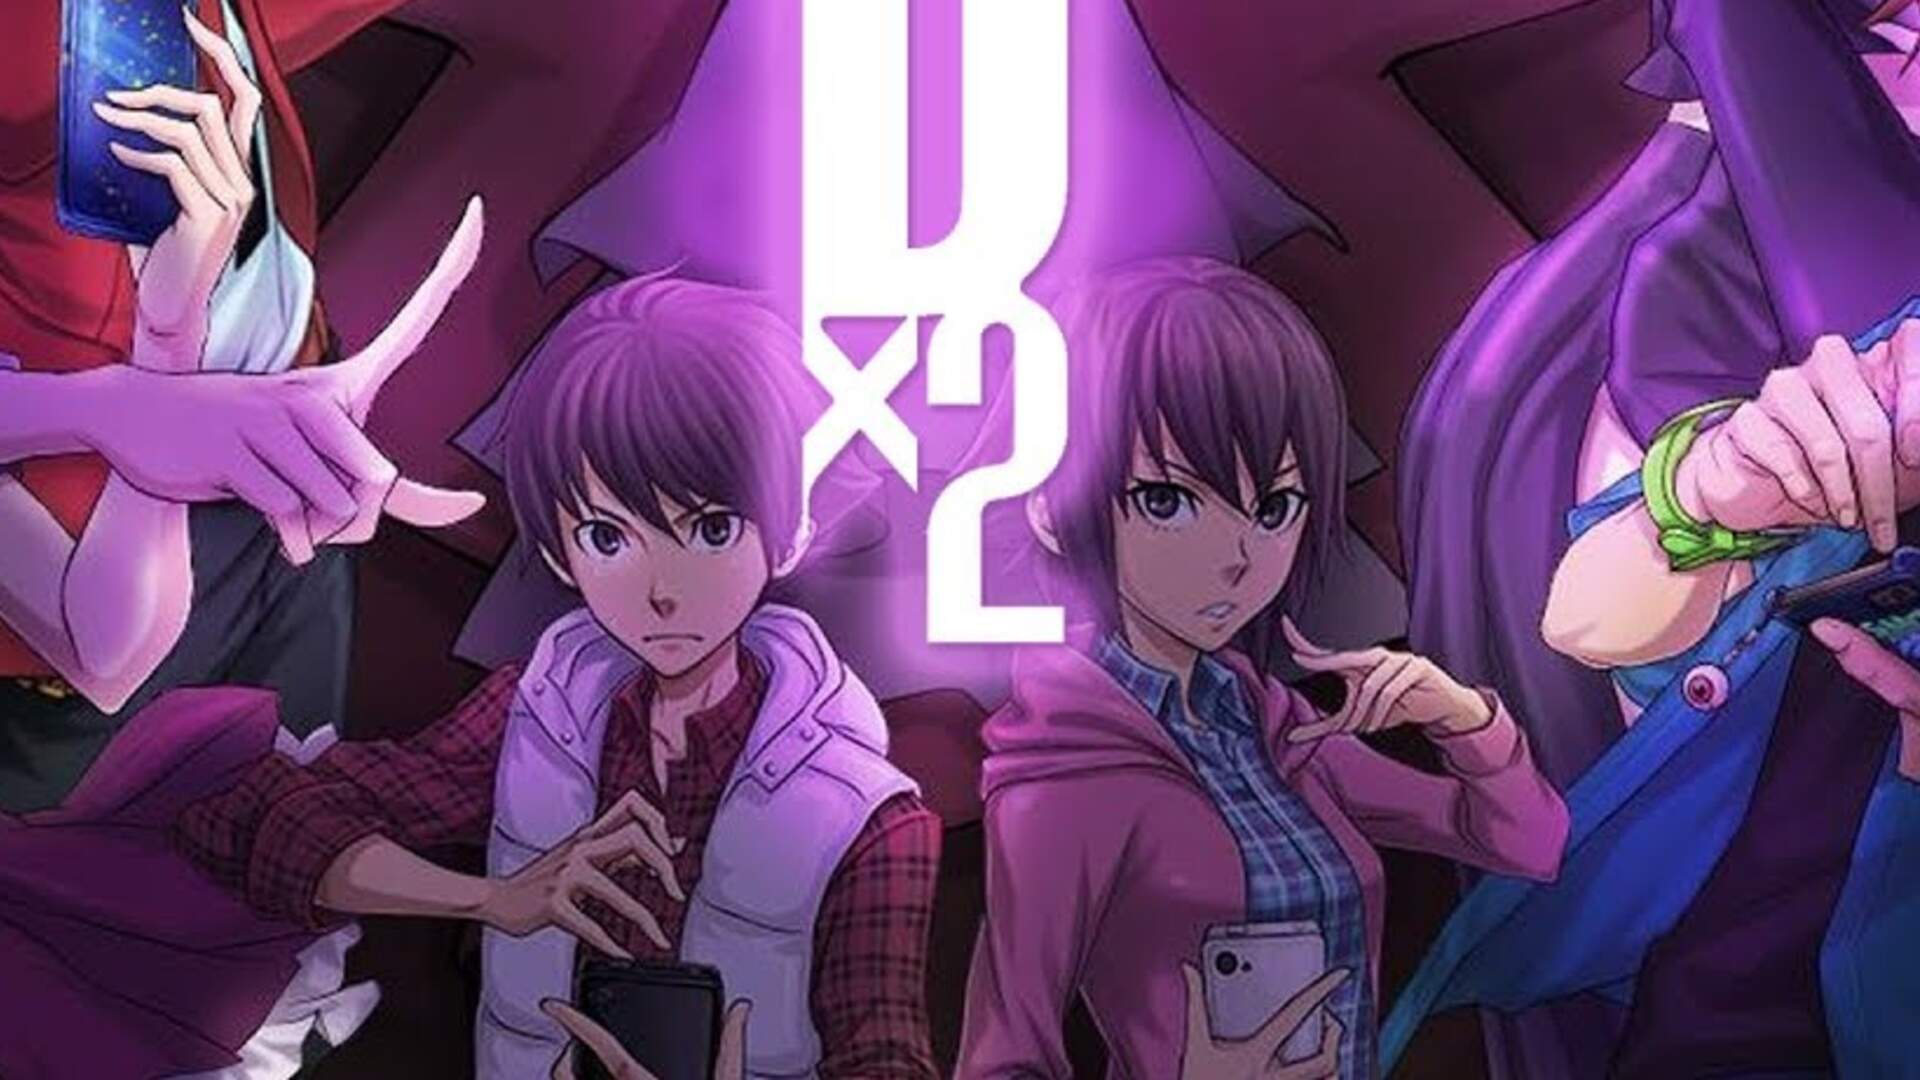 Shin Megami Tensei Fans are Having Way Too Much Fun With the New Mobile Game's Demon Ratings